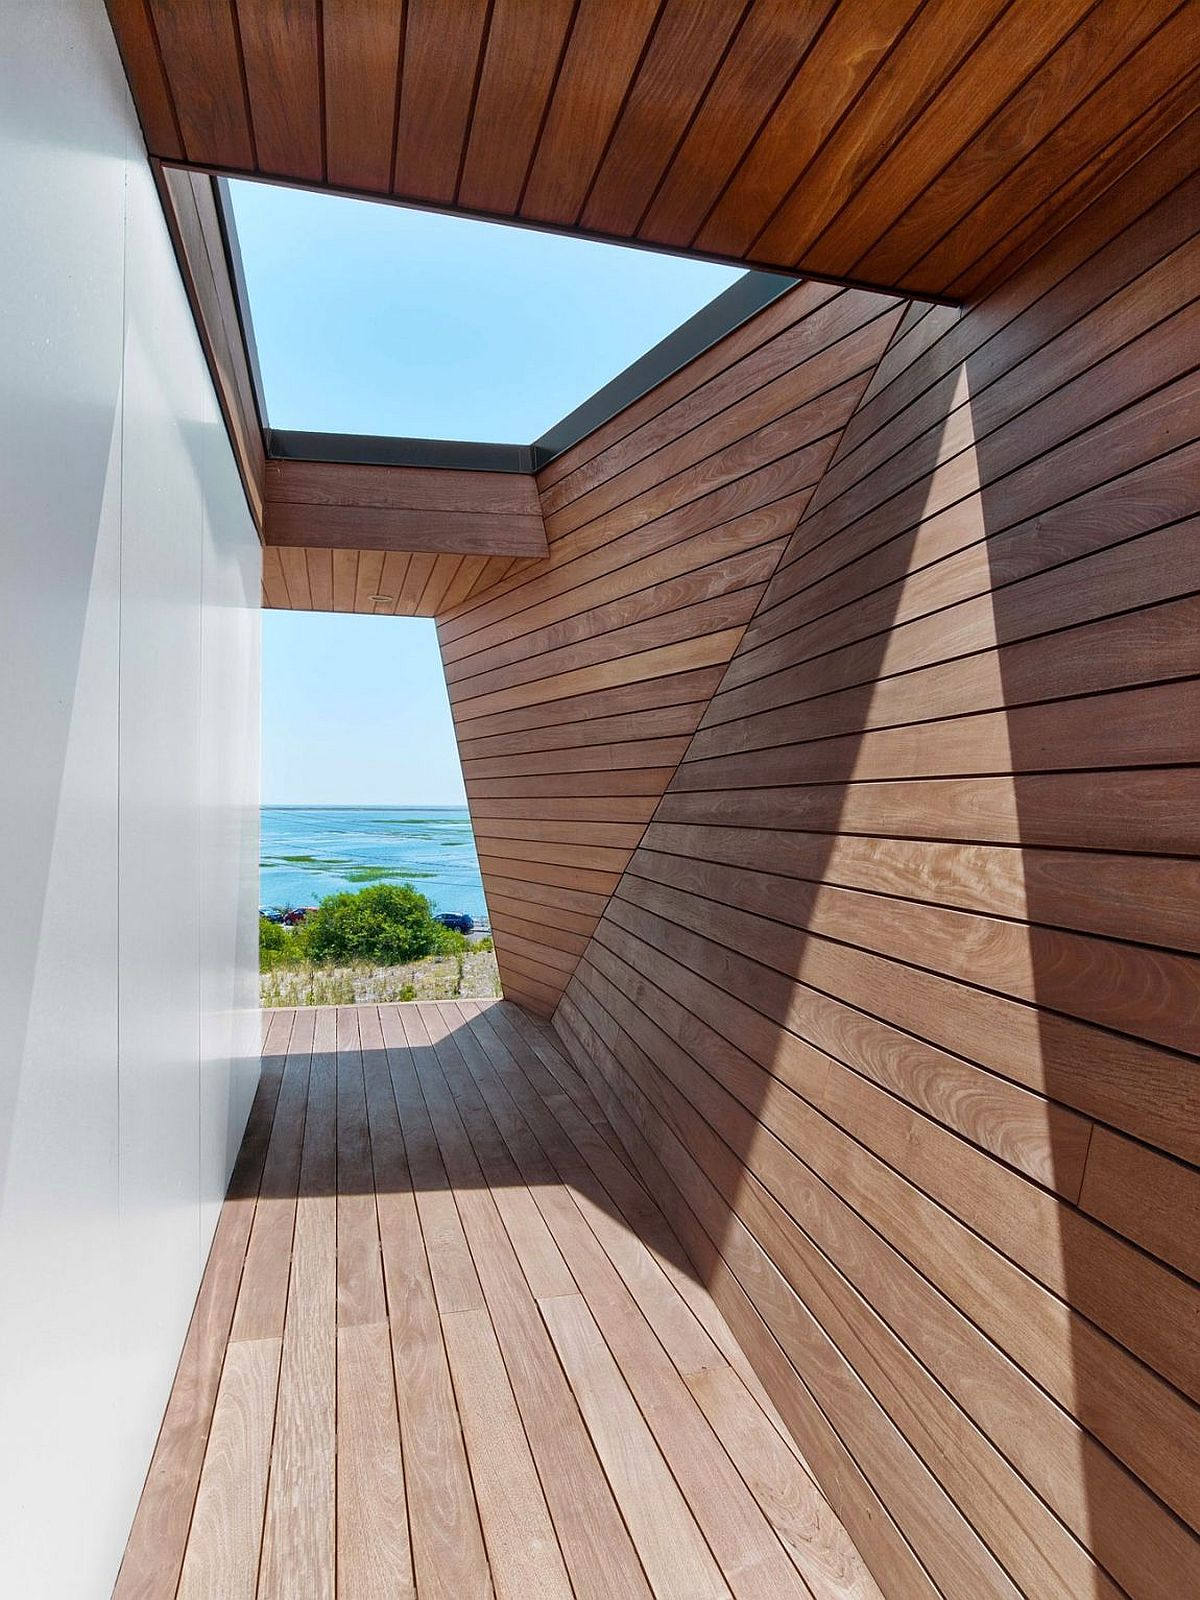 Glass skylight brings extra natural light into the beach house